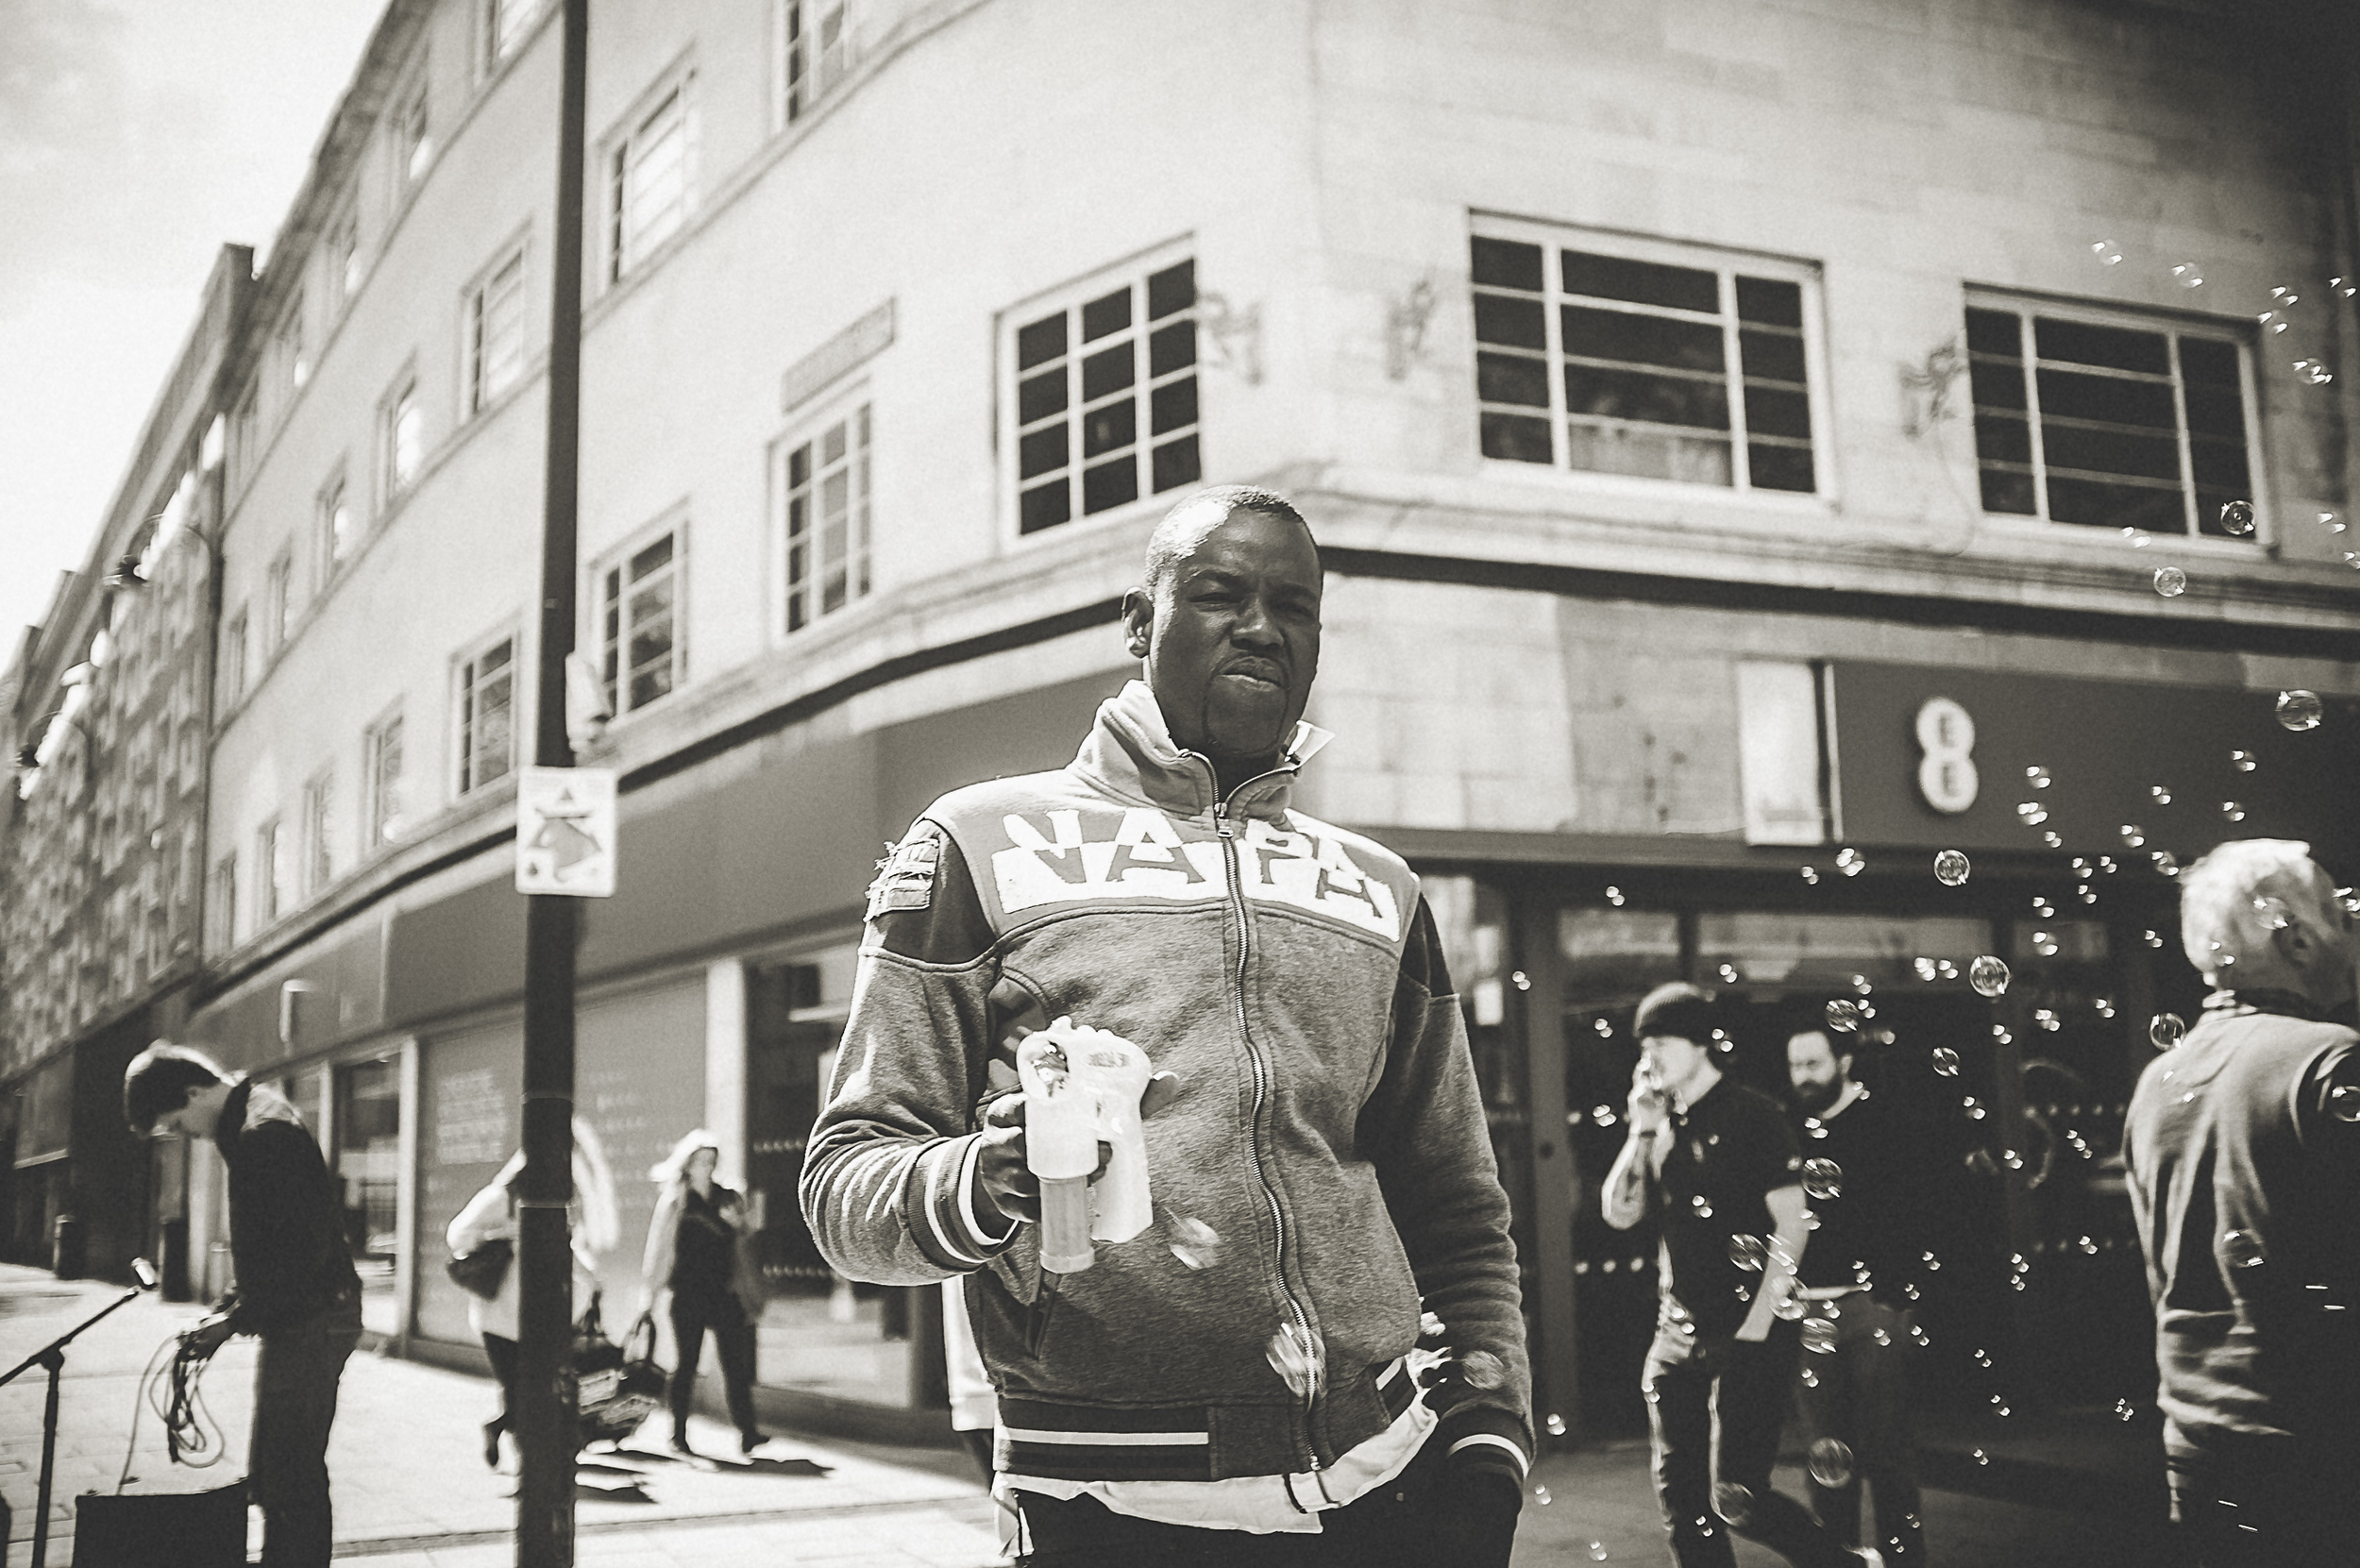 Street photography with the fuji X100 - Shooting from the hip.